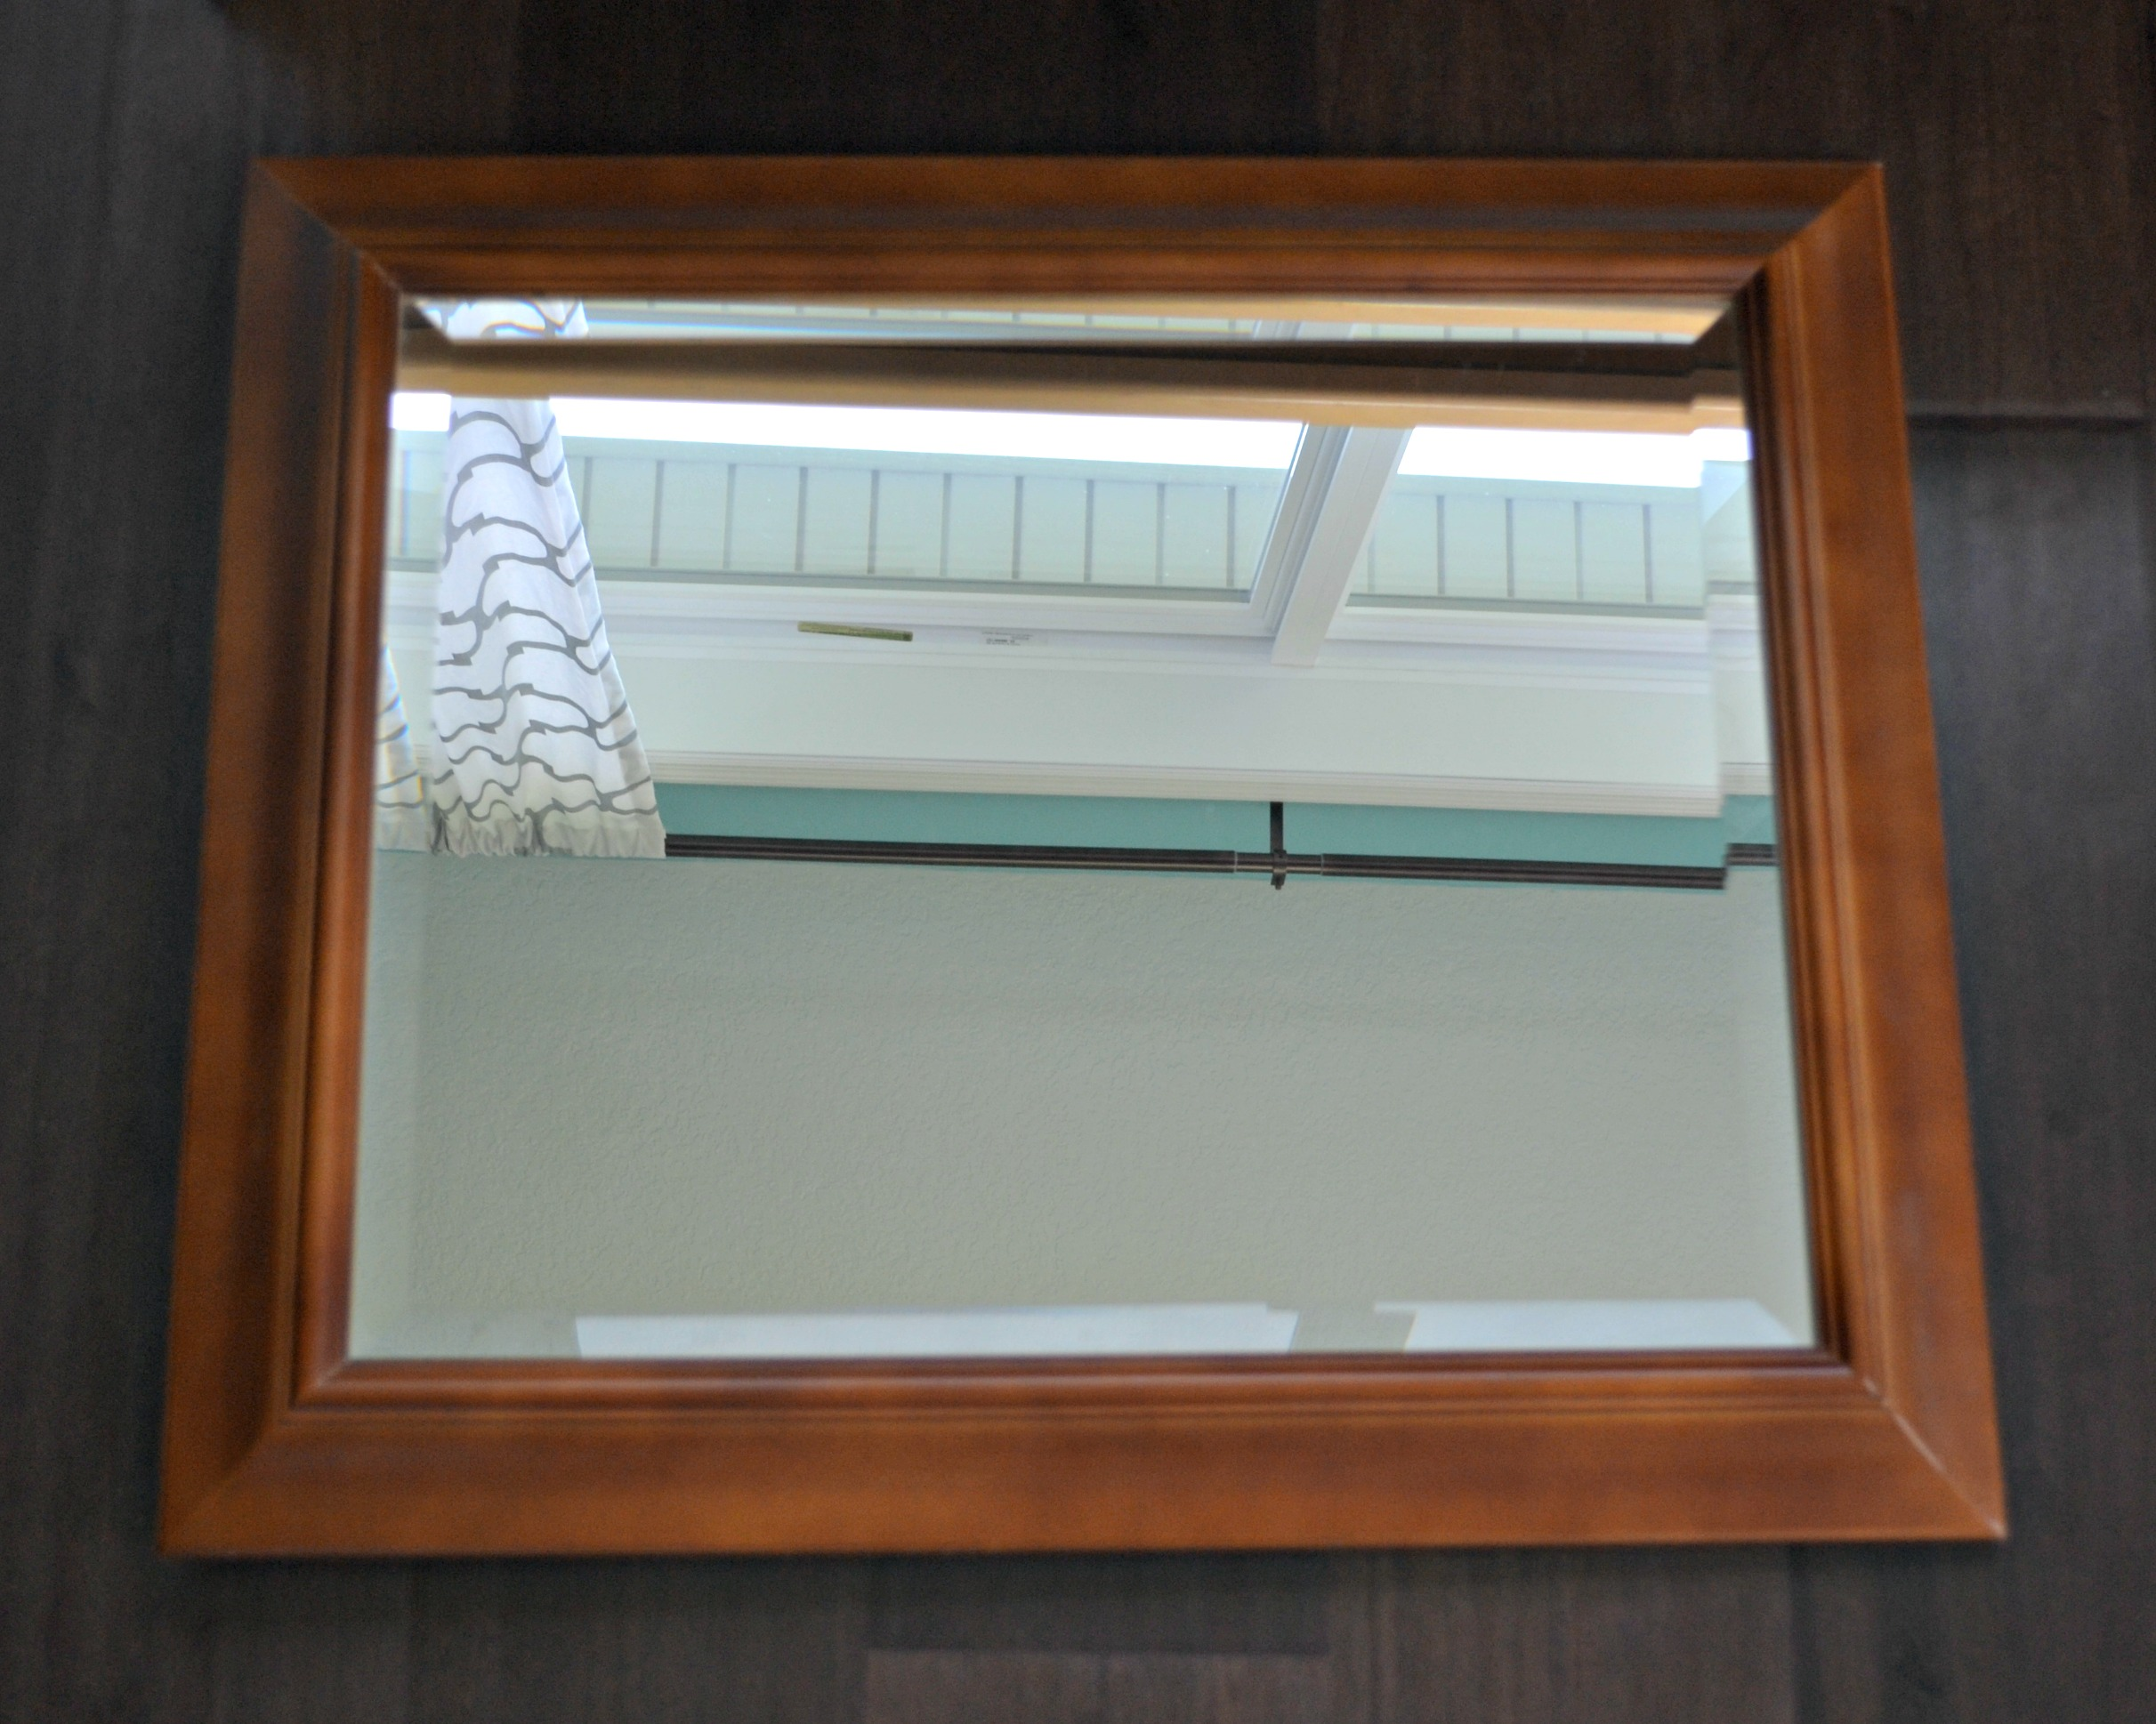 DIY Decor: How to Update a Framed Mirror with Chalk Paint | This ...